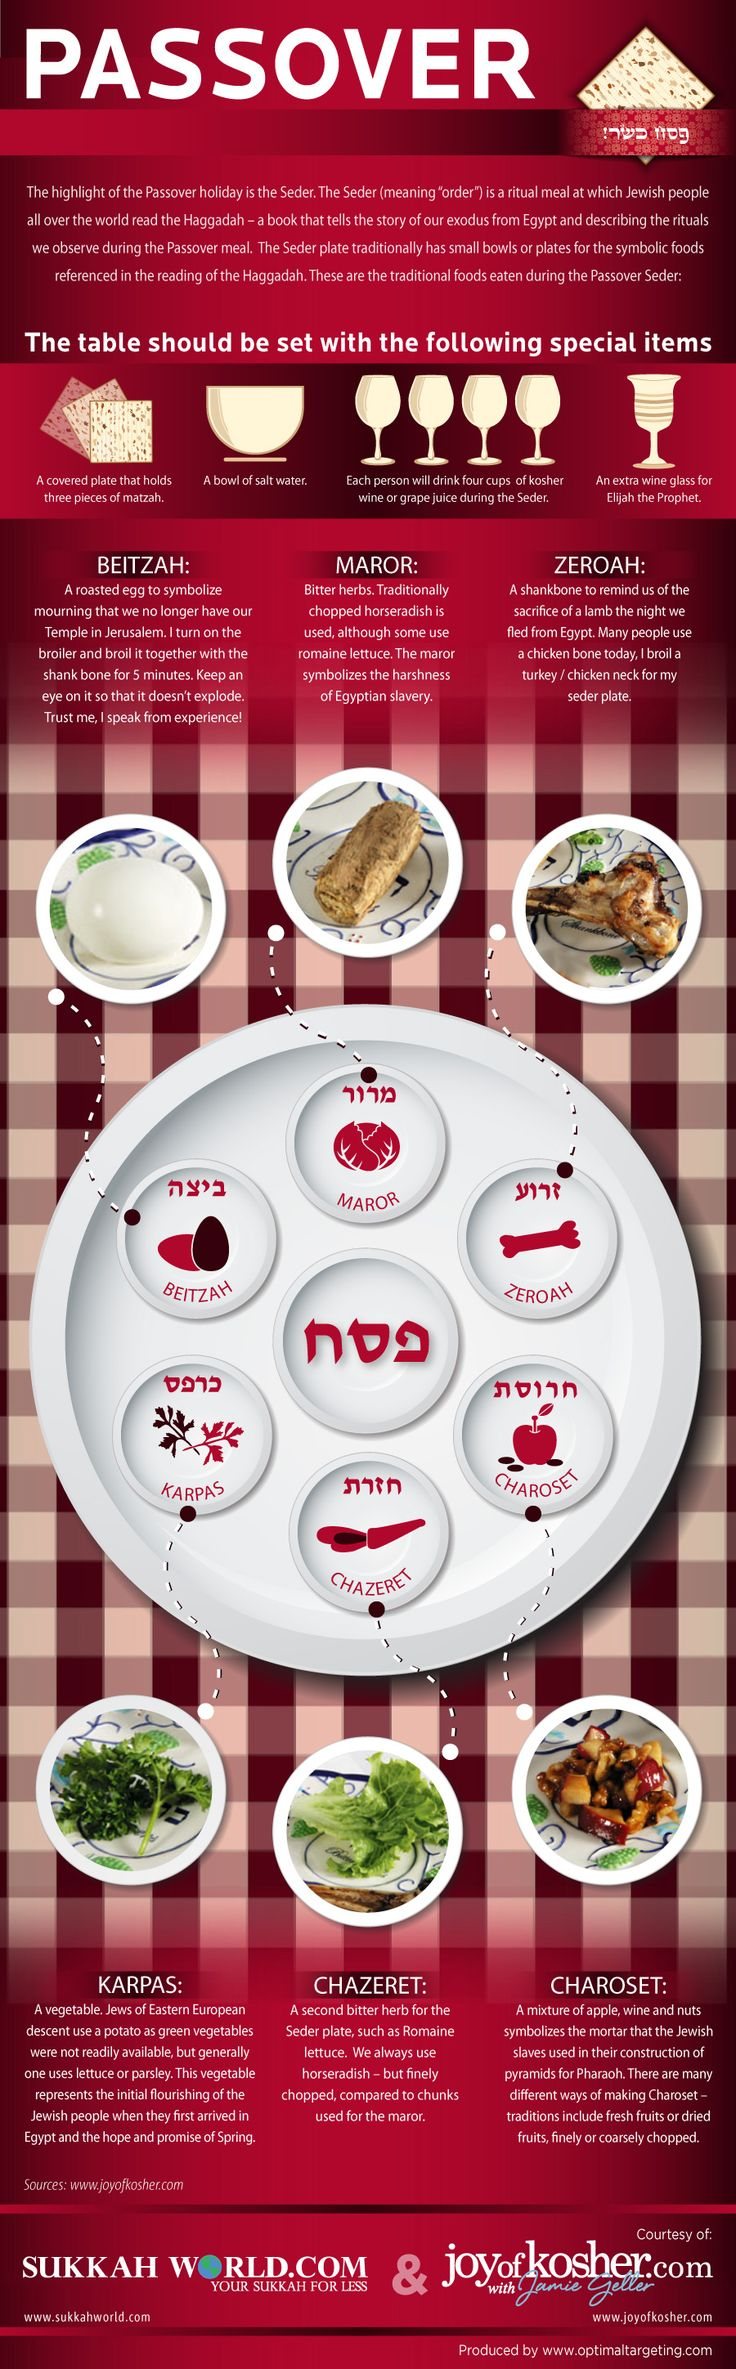 Passover – the Seder meal.  For vegetarians: Most commonly, a ripe beet is used in place of a shankbone at vegetarian seders.